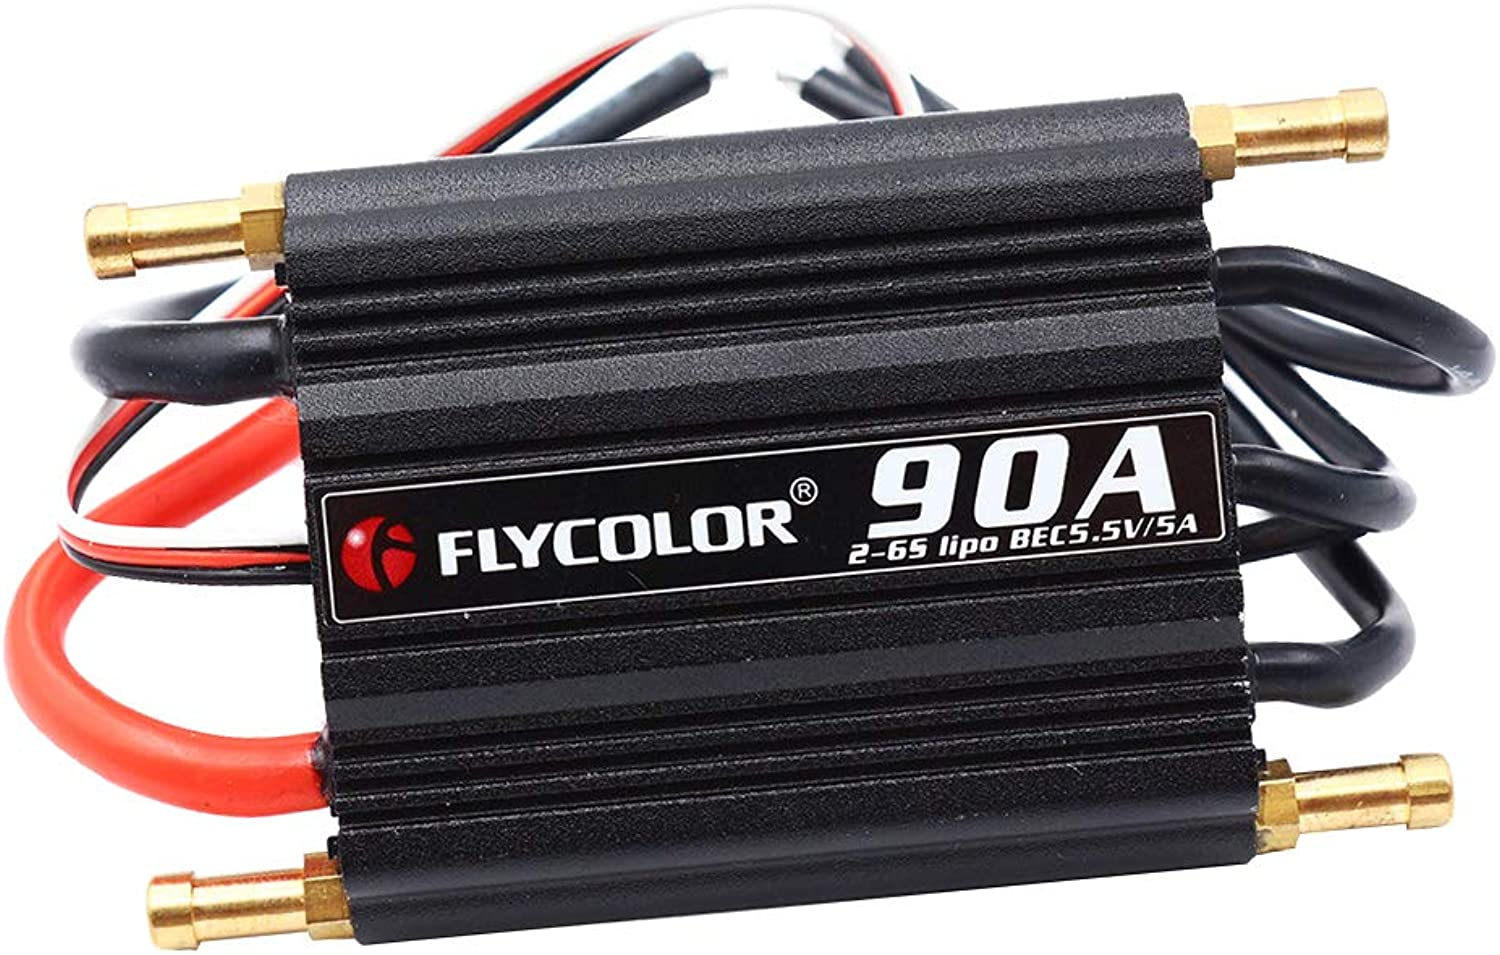 Dolity Flycolor 90A Brushless ESC Waterproof with 5.5V 5A BEC for RC Boat Motors